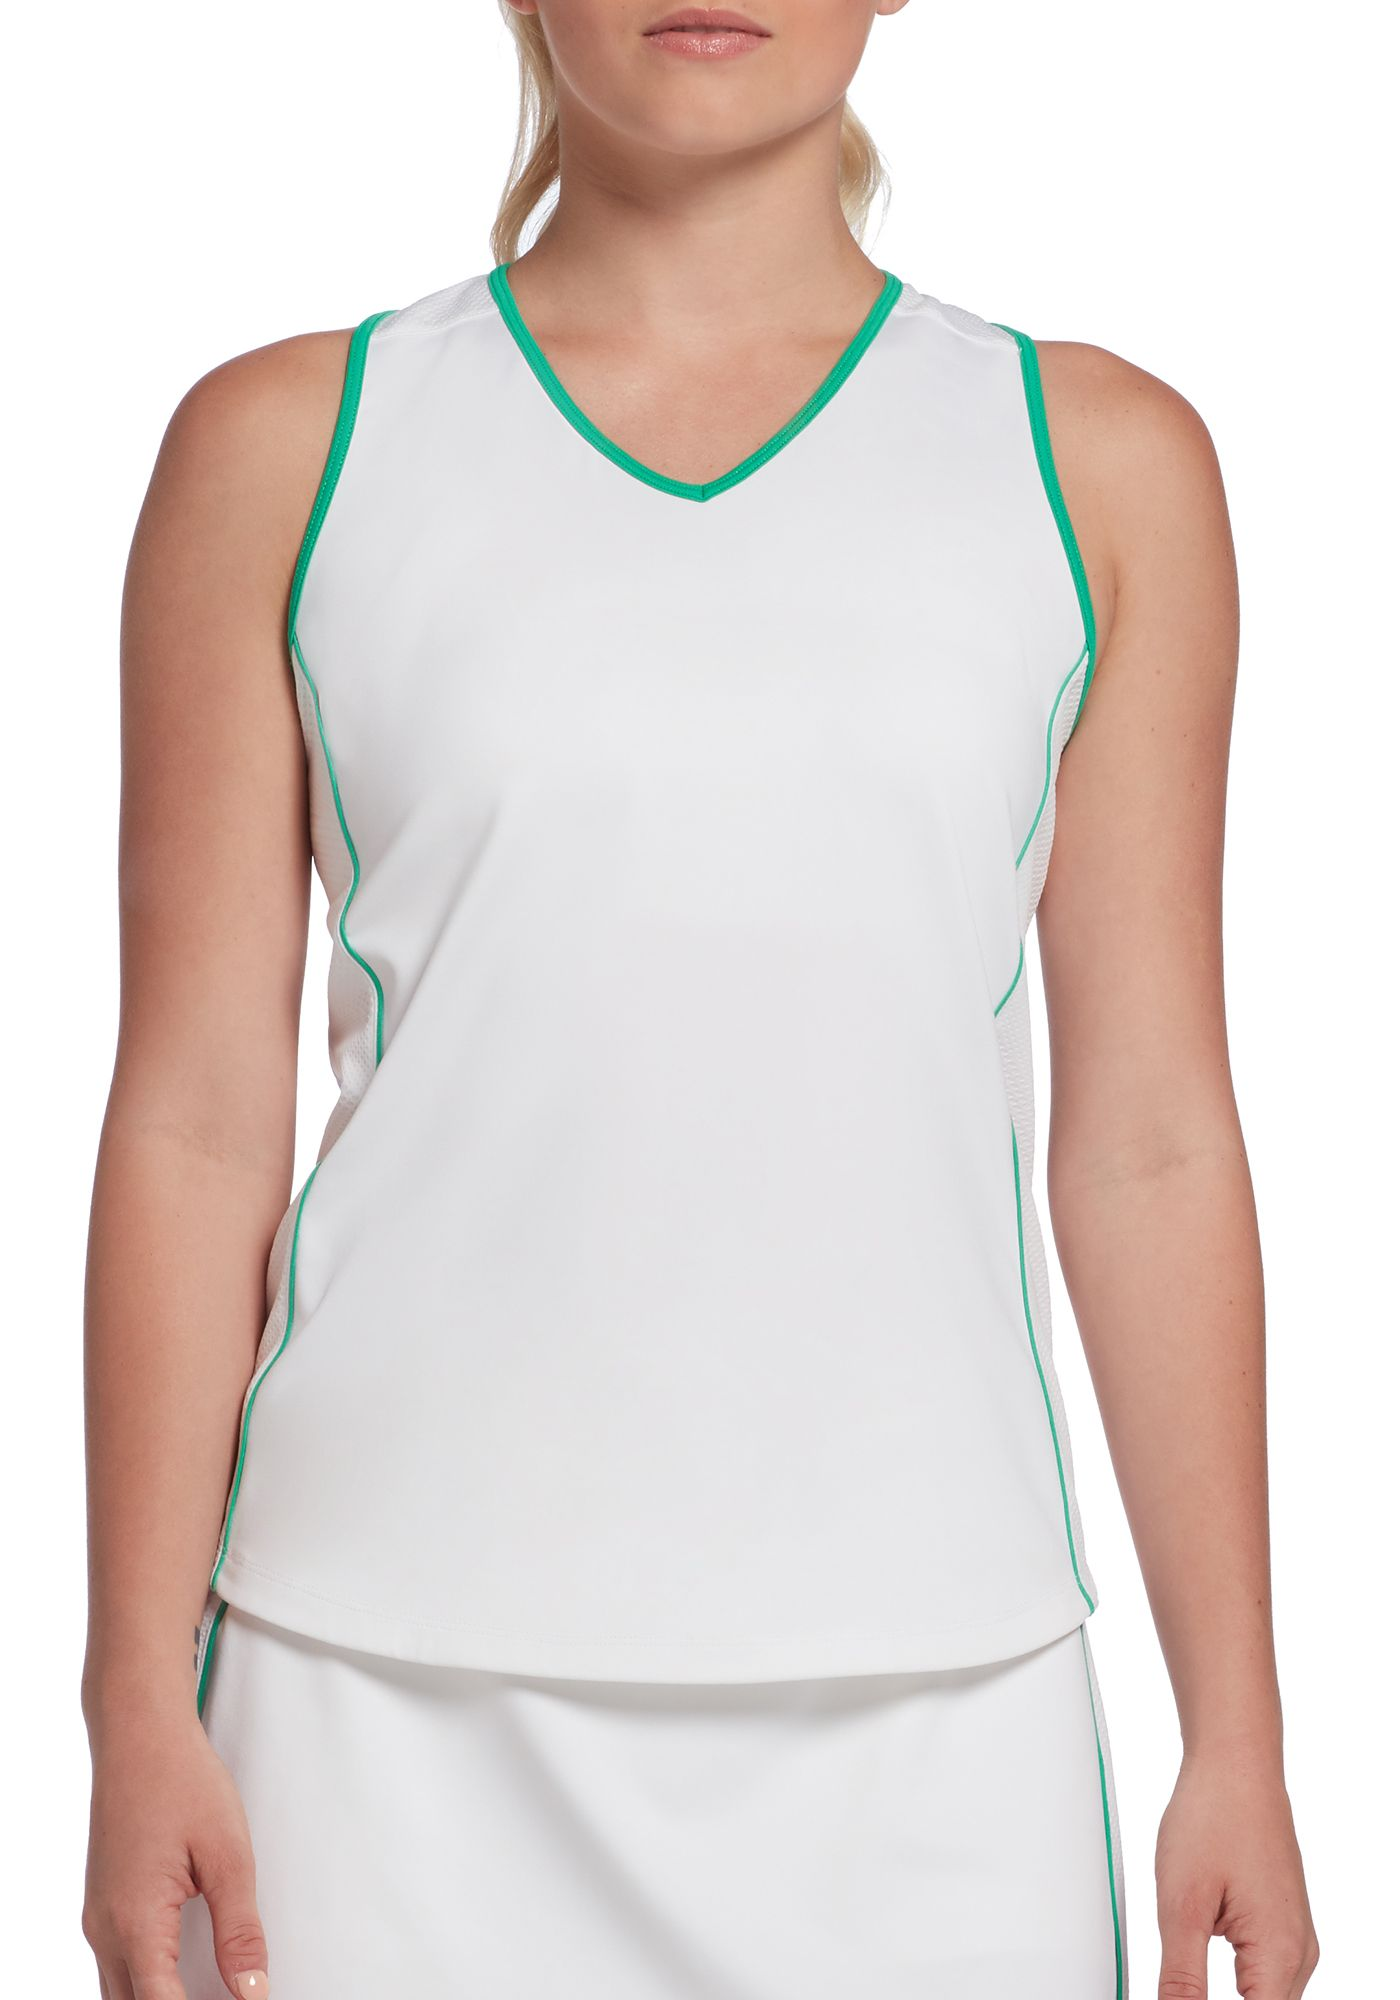 Prince Women's Piped Match Racerback Tennis Tank